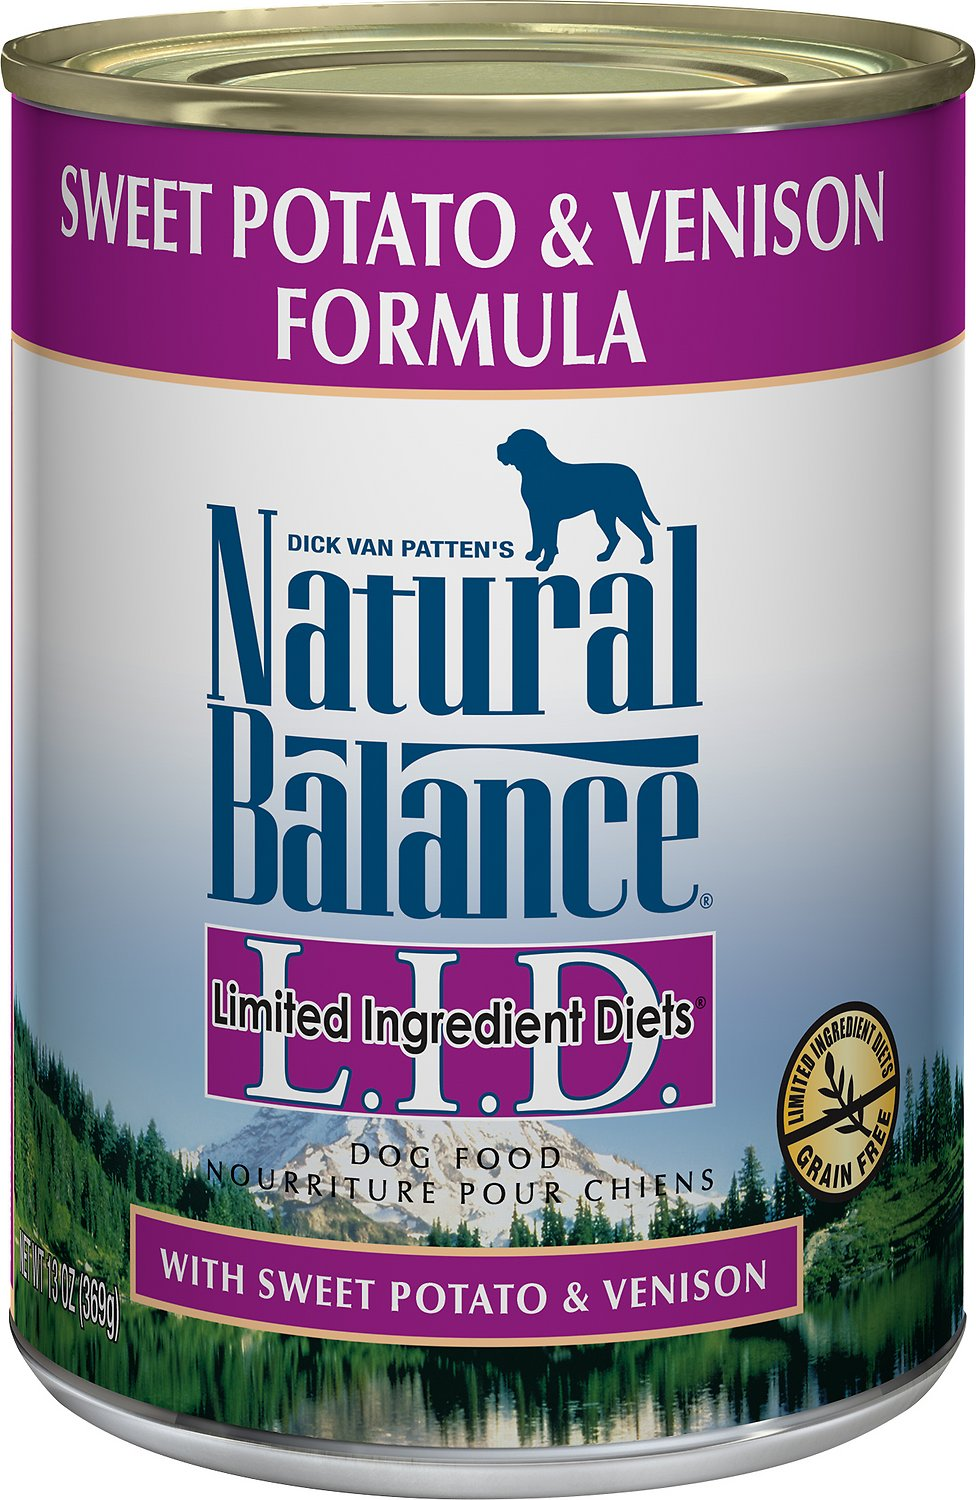 Natural Balance L.I.D. Limited Ingredient Diets Sweet Potato & Venison Formula Grain-Free Canned Dog Food, 13-oz